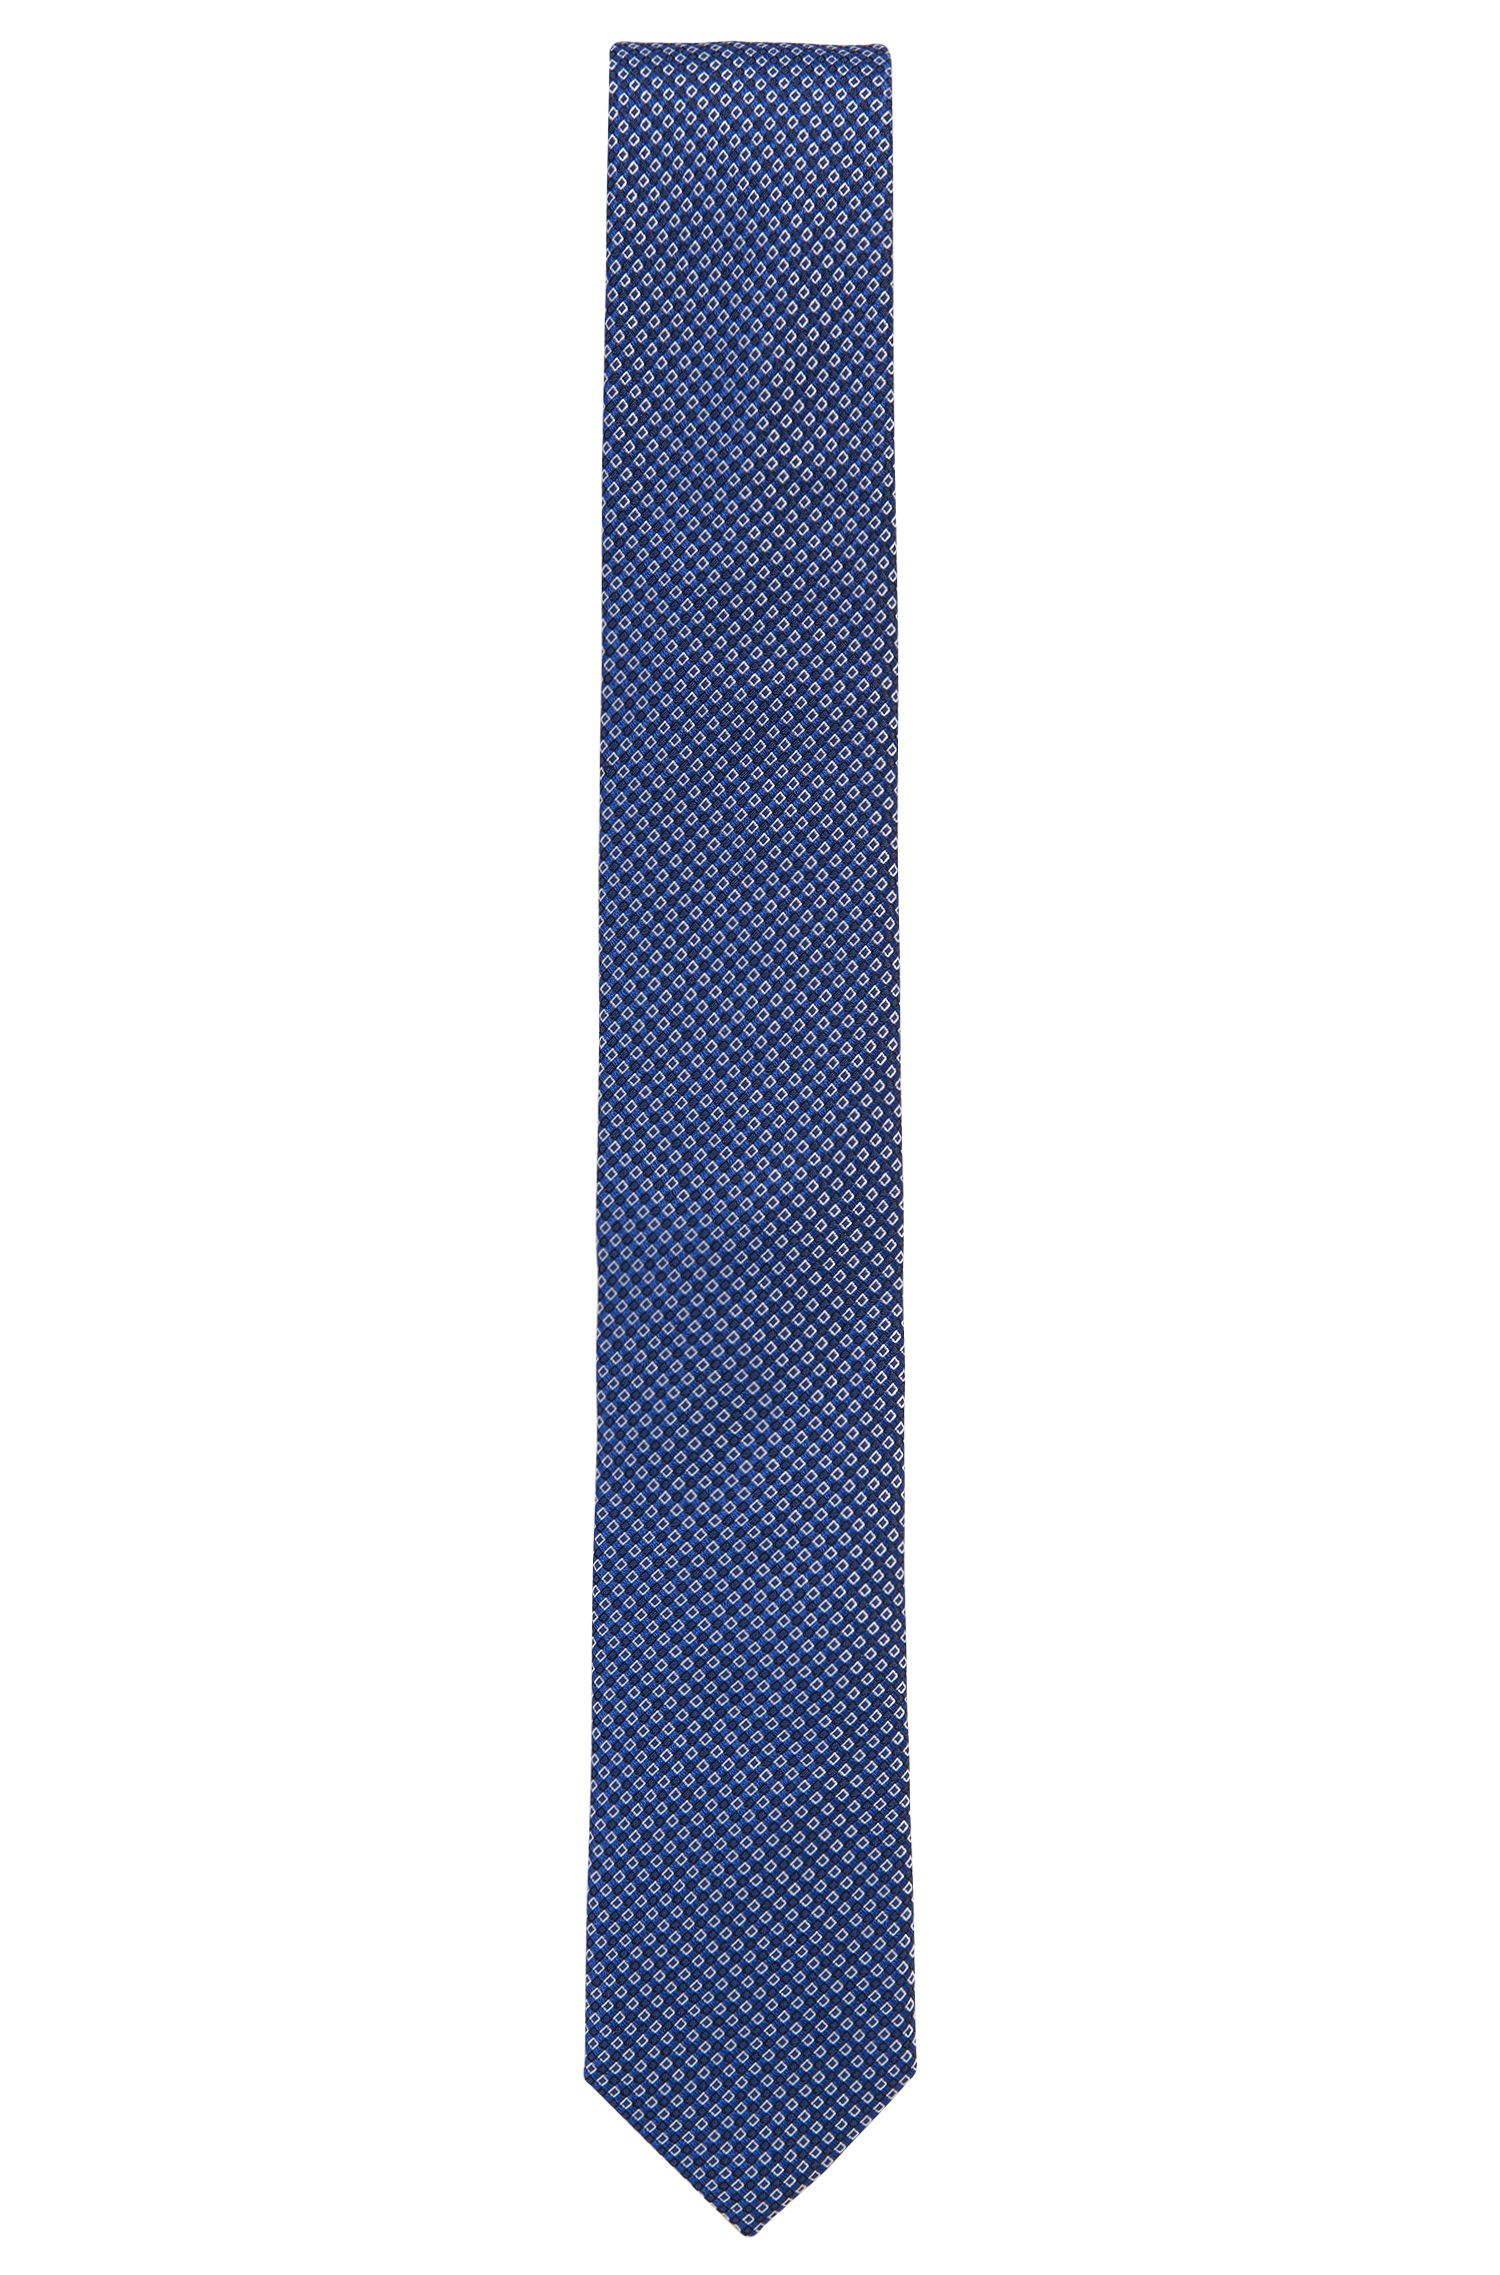 Micro-Patterned Italian Silk Slim Tie